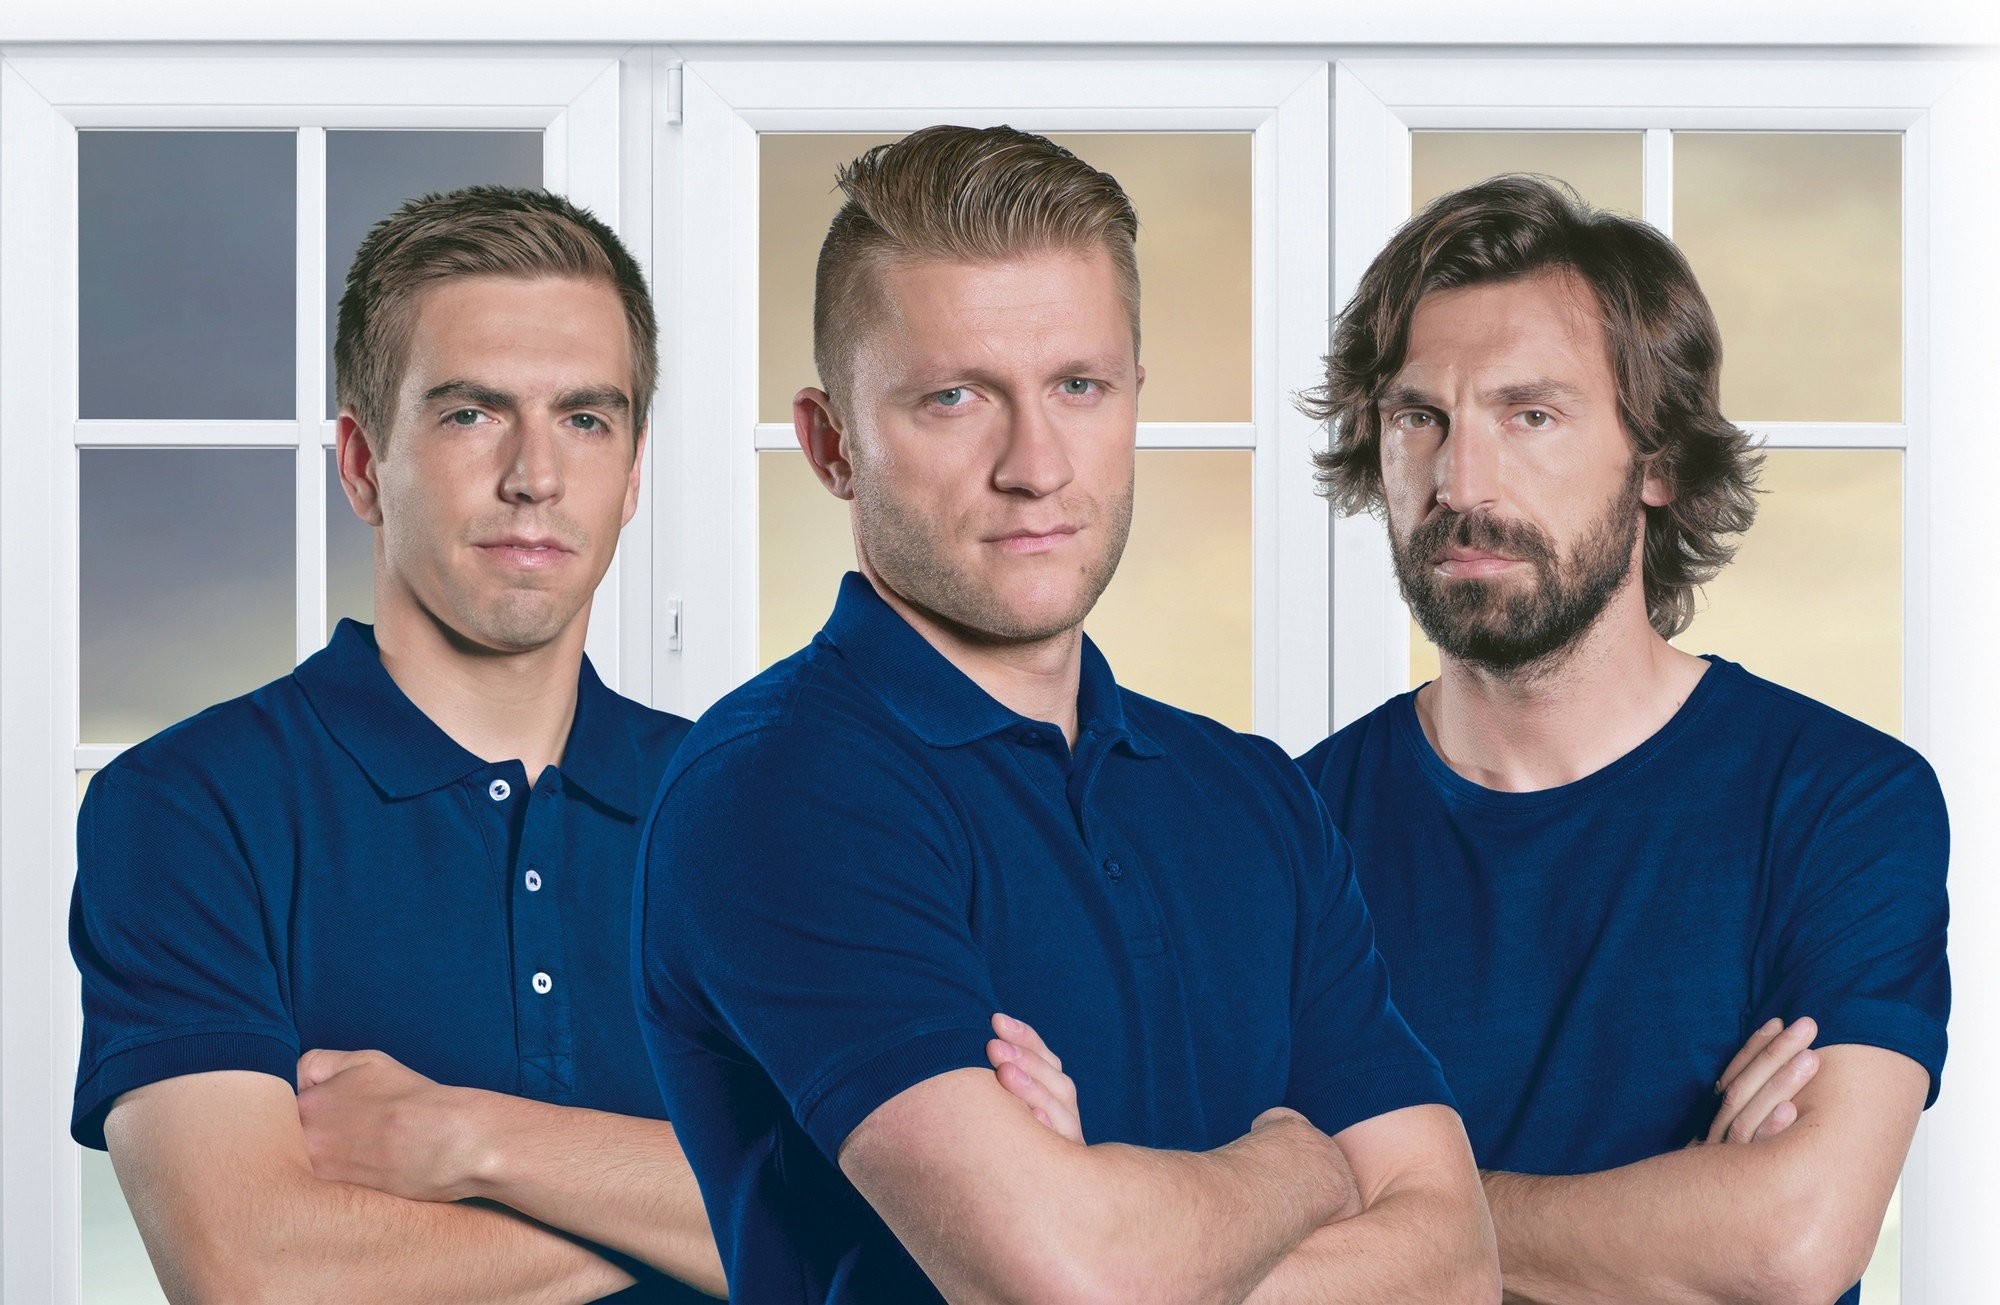 DRUTEX renews the cooperation with Andrea Pirlo, Philipp Lahm and Jakub Błaszczykowski.